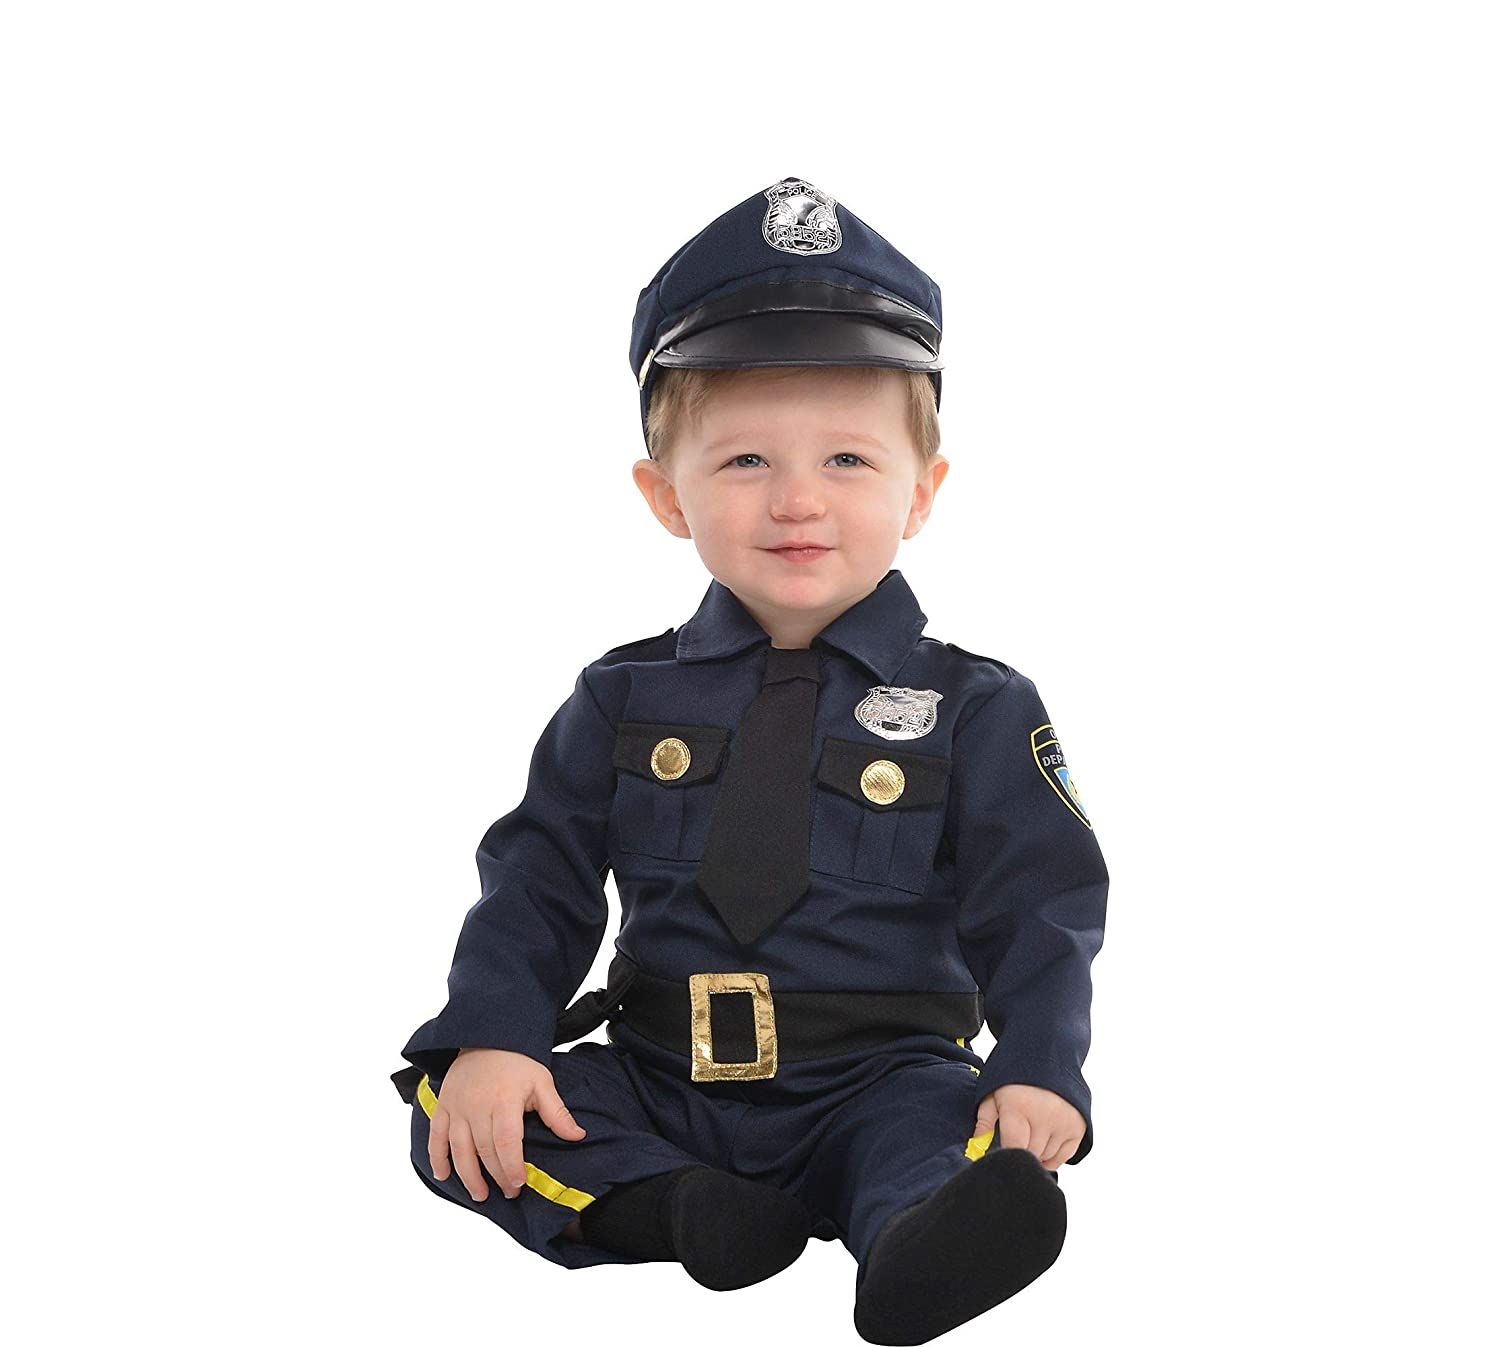 Amscan Cop Recruit Infants Costume AmScan Costumes USA